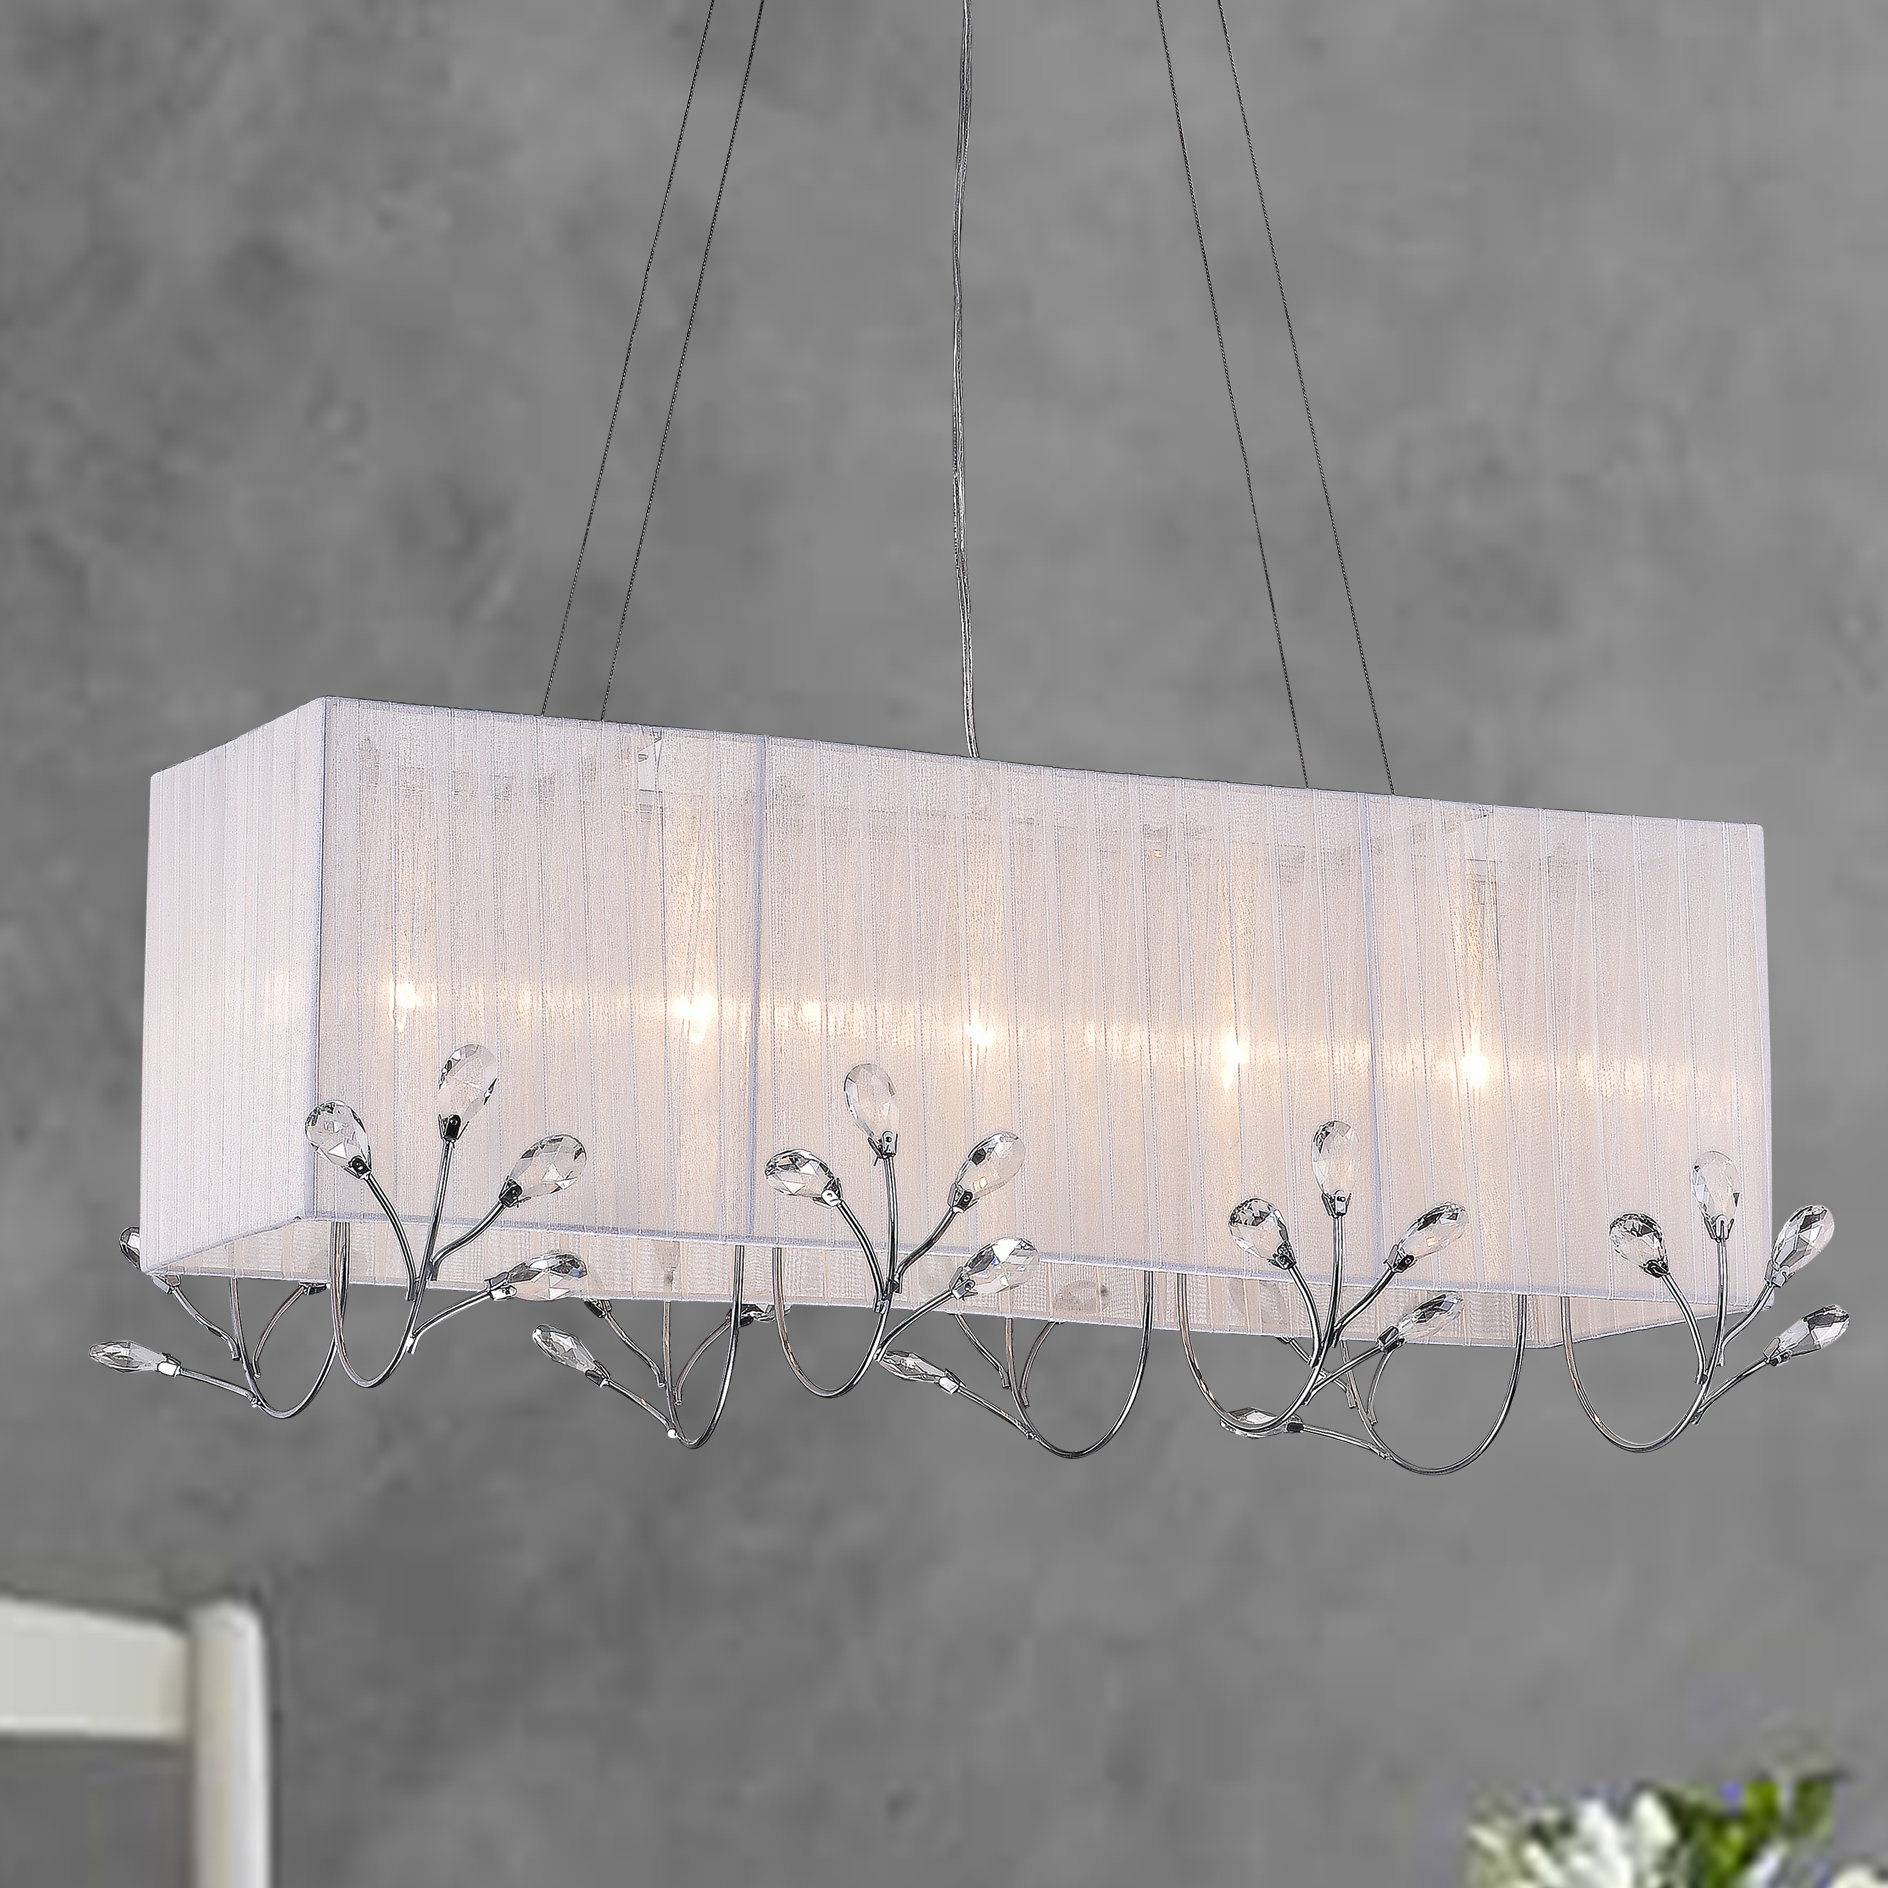 [%Square & Rectangular Chandeliers Sale – Up To 65% Off Until With Most Recently Released Hewitt 4 Light Square Chandeliers|Hewitt 4 Light Square Chandeliers Within Current Square & Rectangular Chandeliers Sale – Up To 65% Off Until|Fashionable Hewitt 4 Light Square Chandeliers With Square & Rectangular Chandeliers Sale – Up To 65% Off Until|Newest Square & Rectangular Chandeliers Sale – Up To 65% Off Until Inside Hewitt 4 Light Square Chandeliers%] (View 2 of 20)